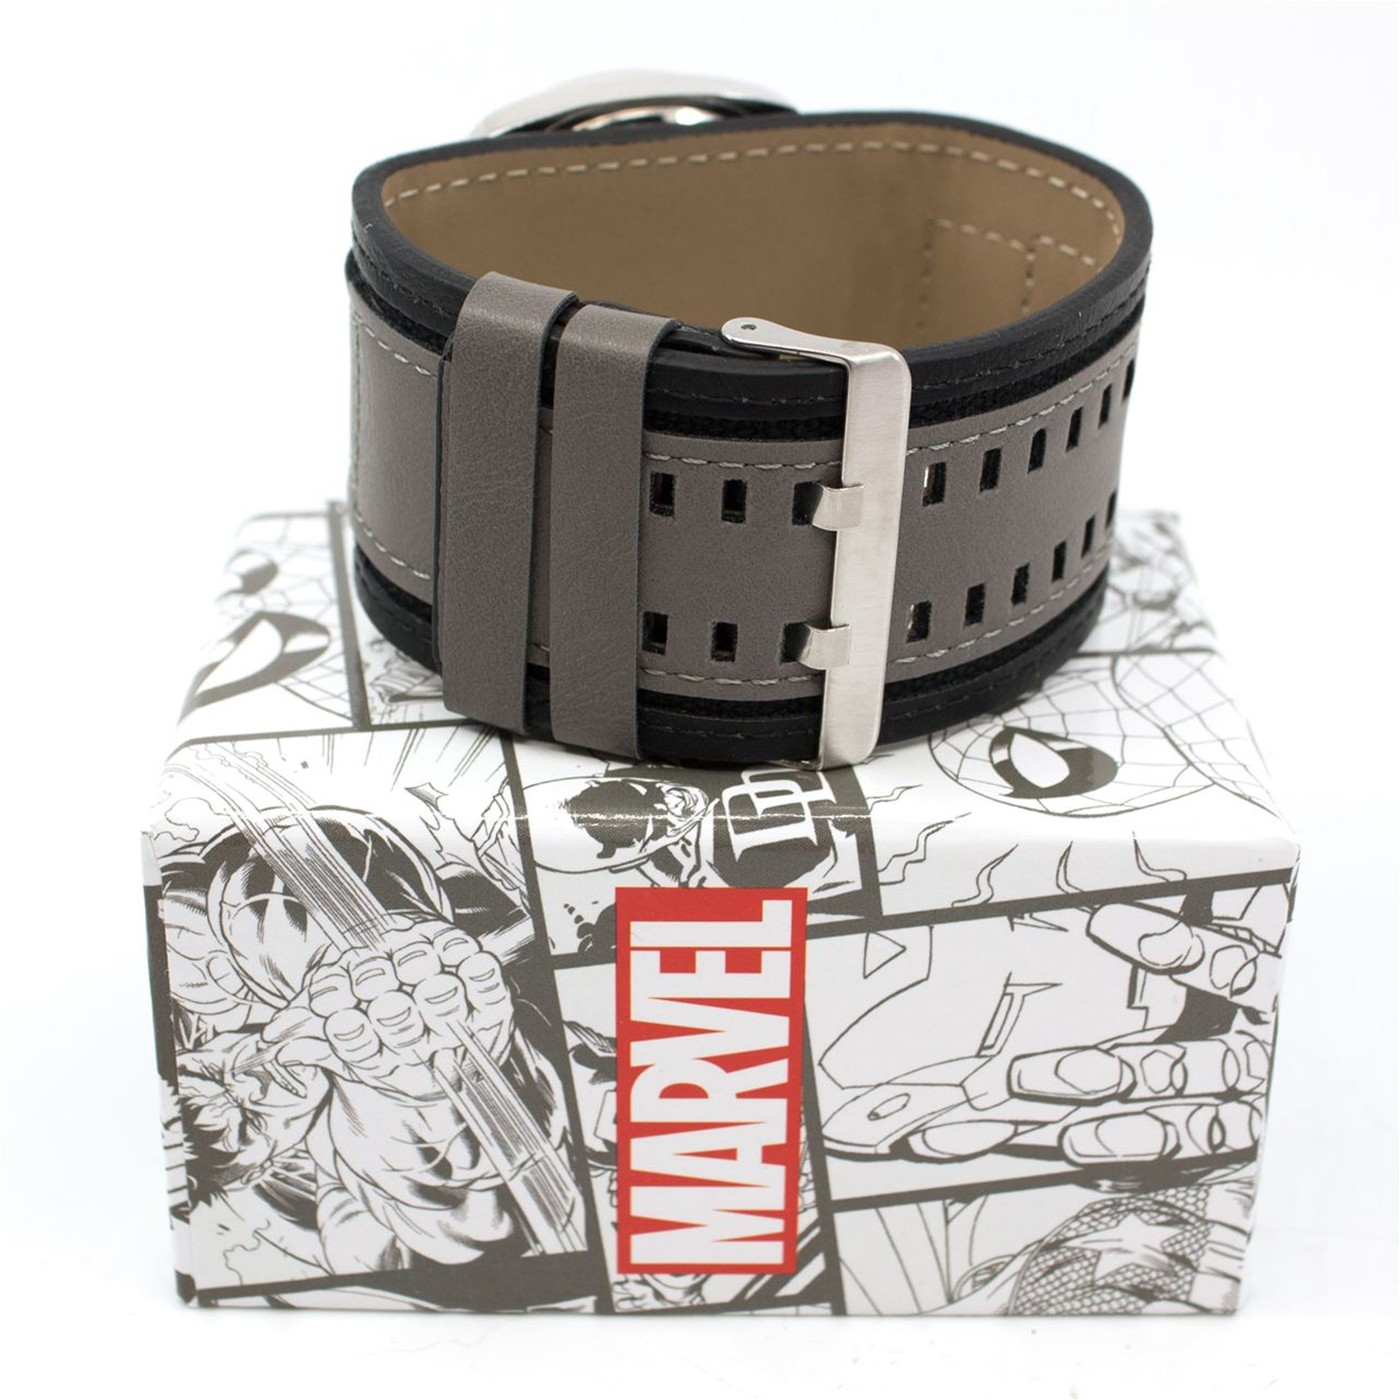 Avengers Symbol Watch with Dual Fasten Adjustable Strap